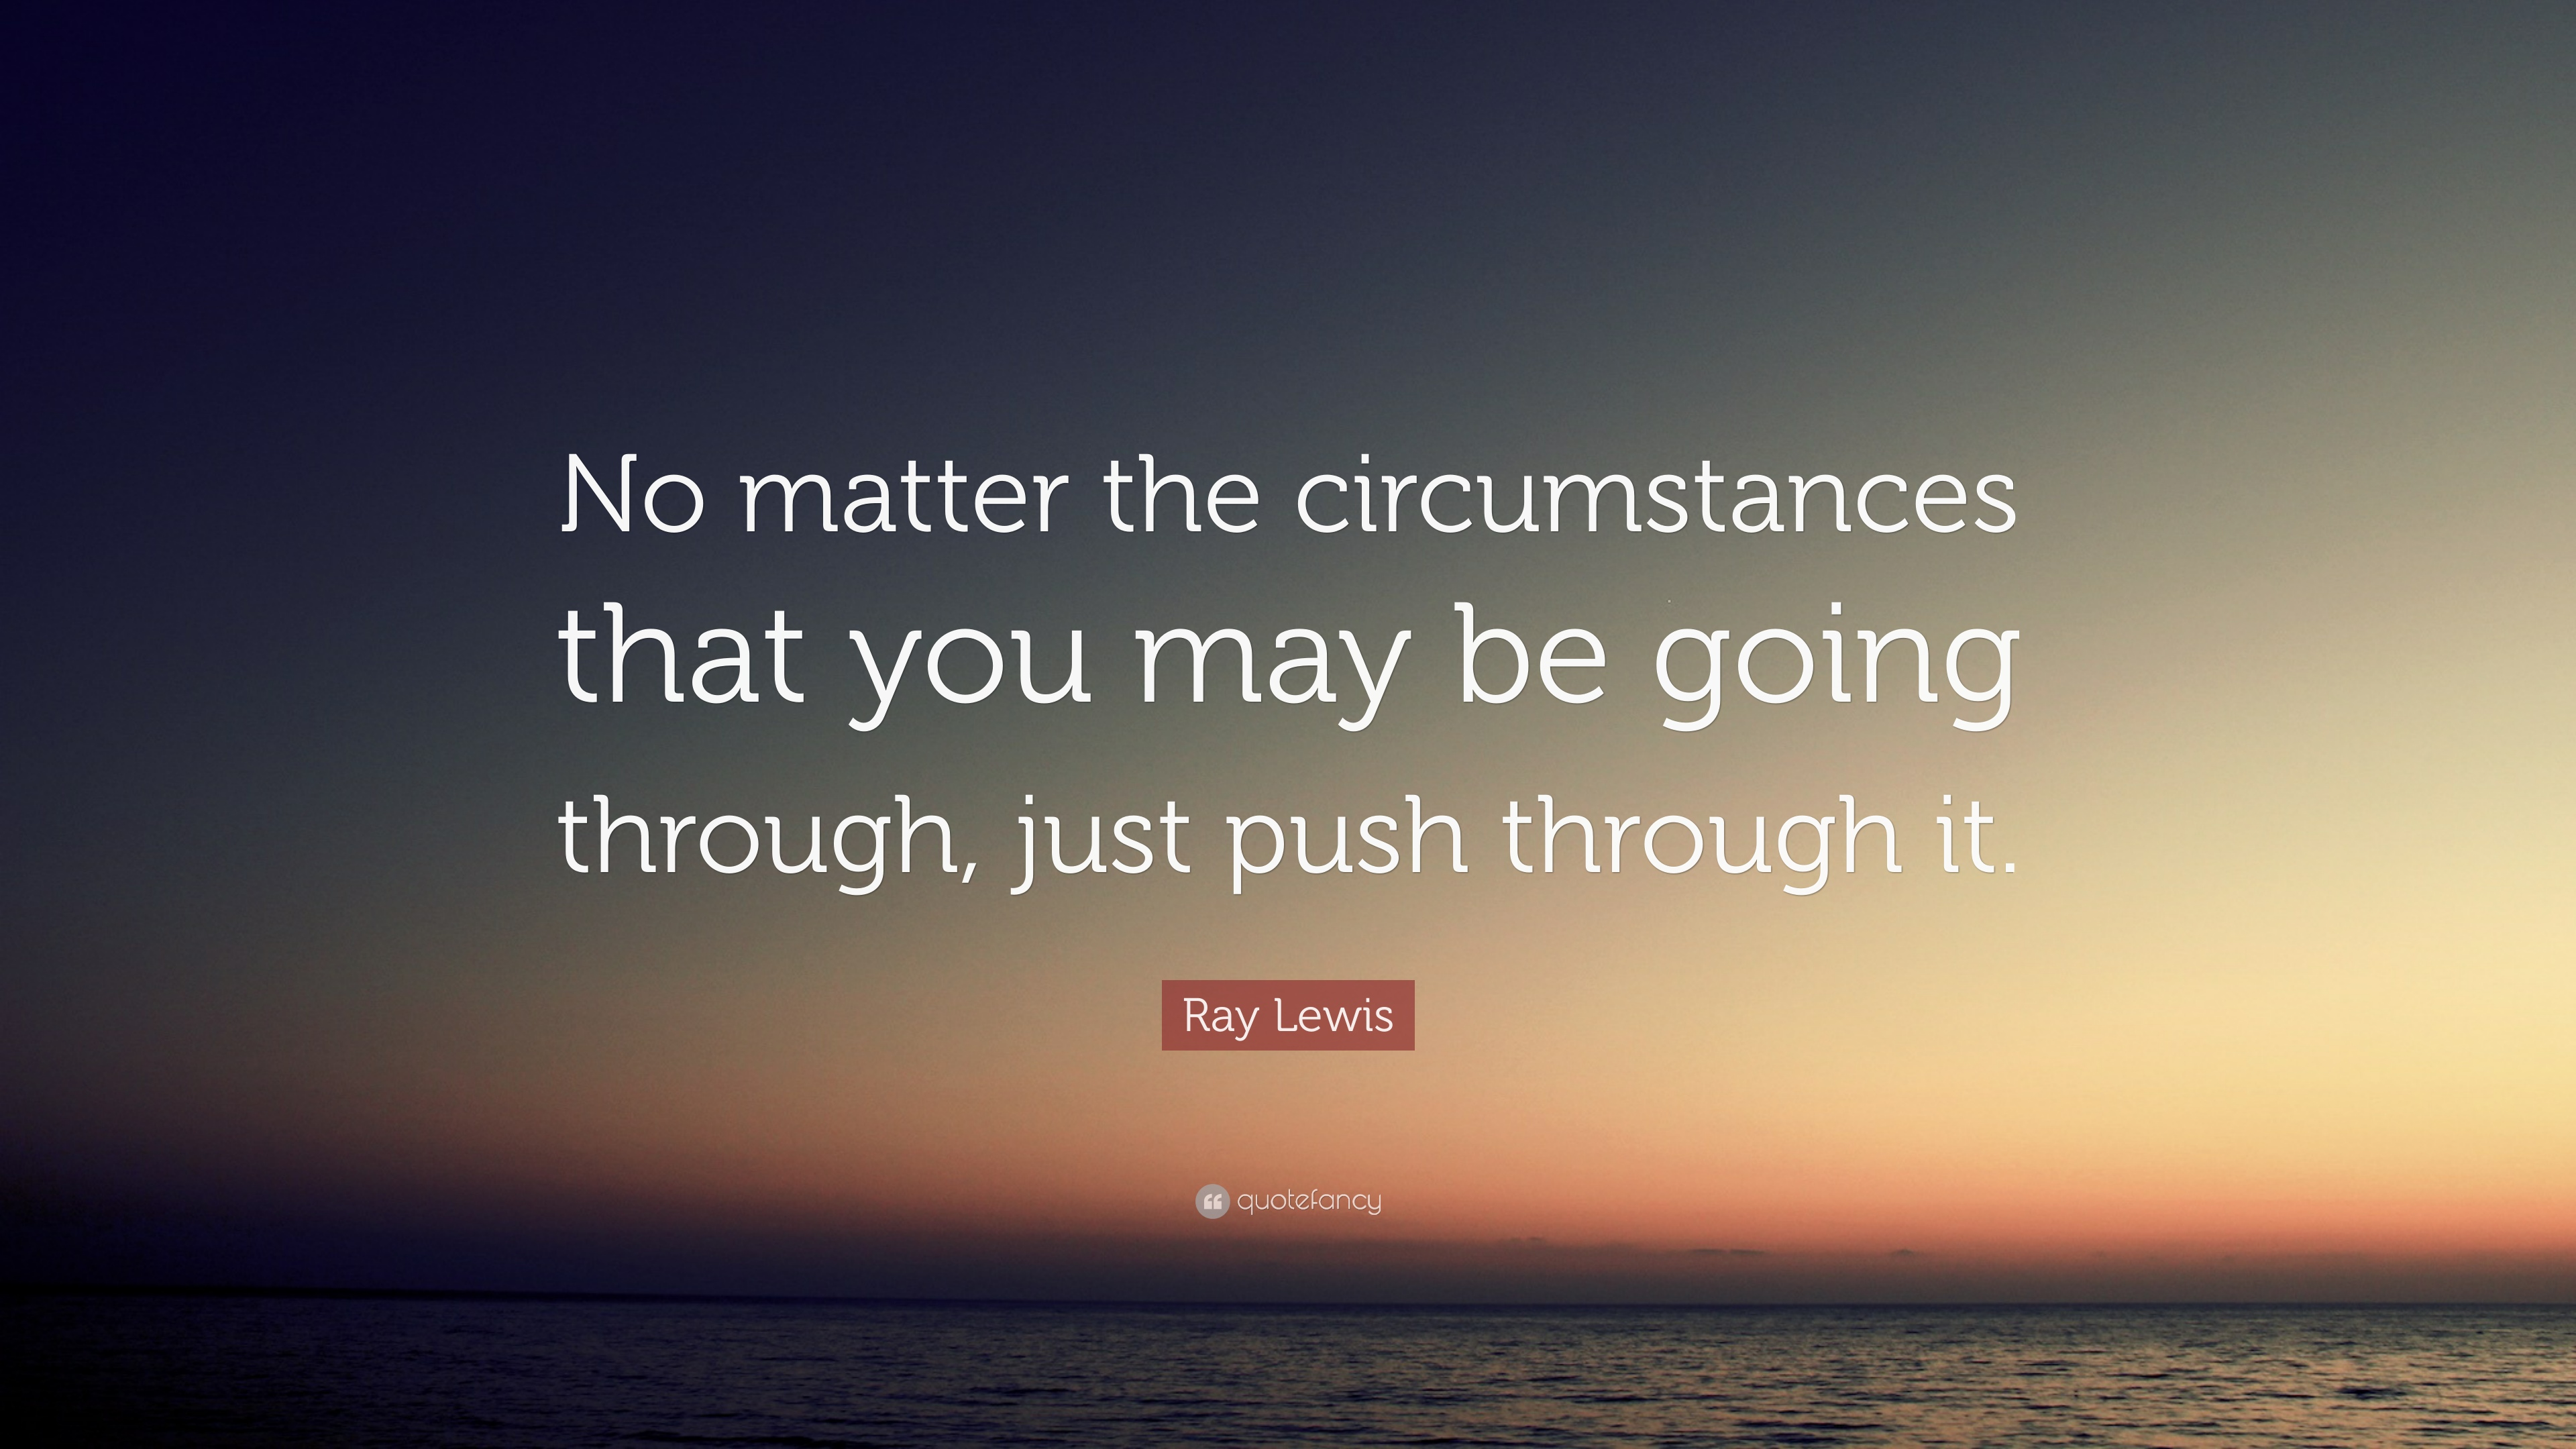 """Ray Lewis Quotes About Success: Ray Lewis Quote: """"No Matter The Circumstances That You May"""